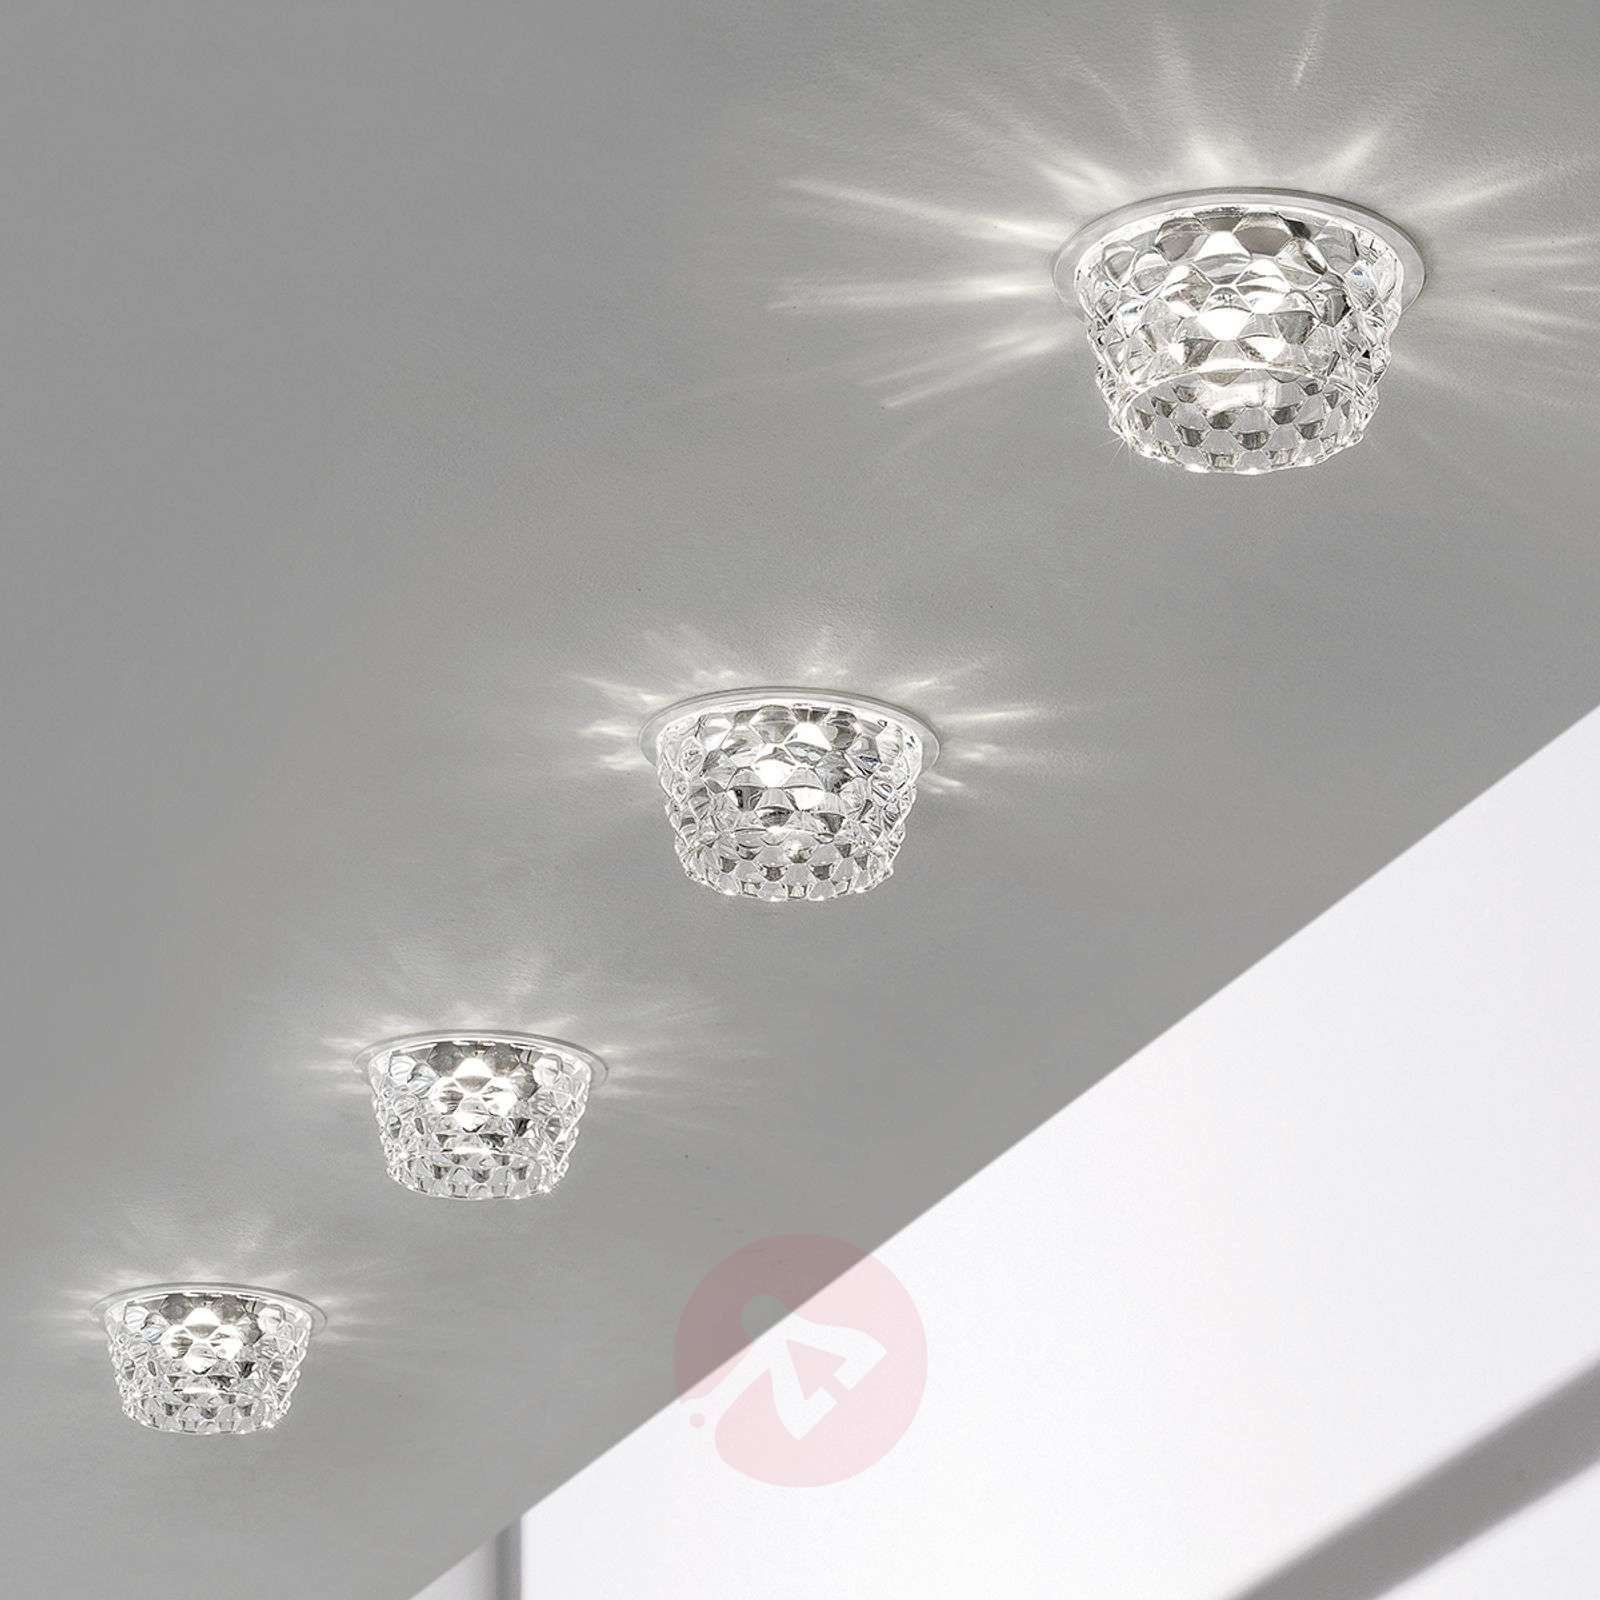 Glass led recessed ceiling light fedora clear lights glass led recessed ceiling light fedora clear 1088114 01 aloadofball Images